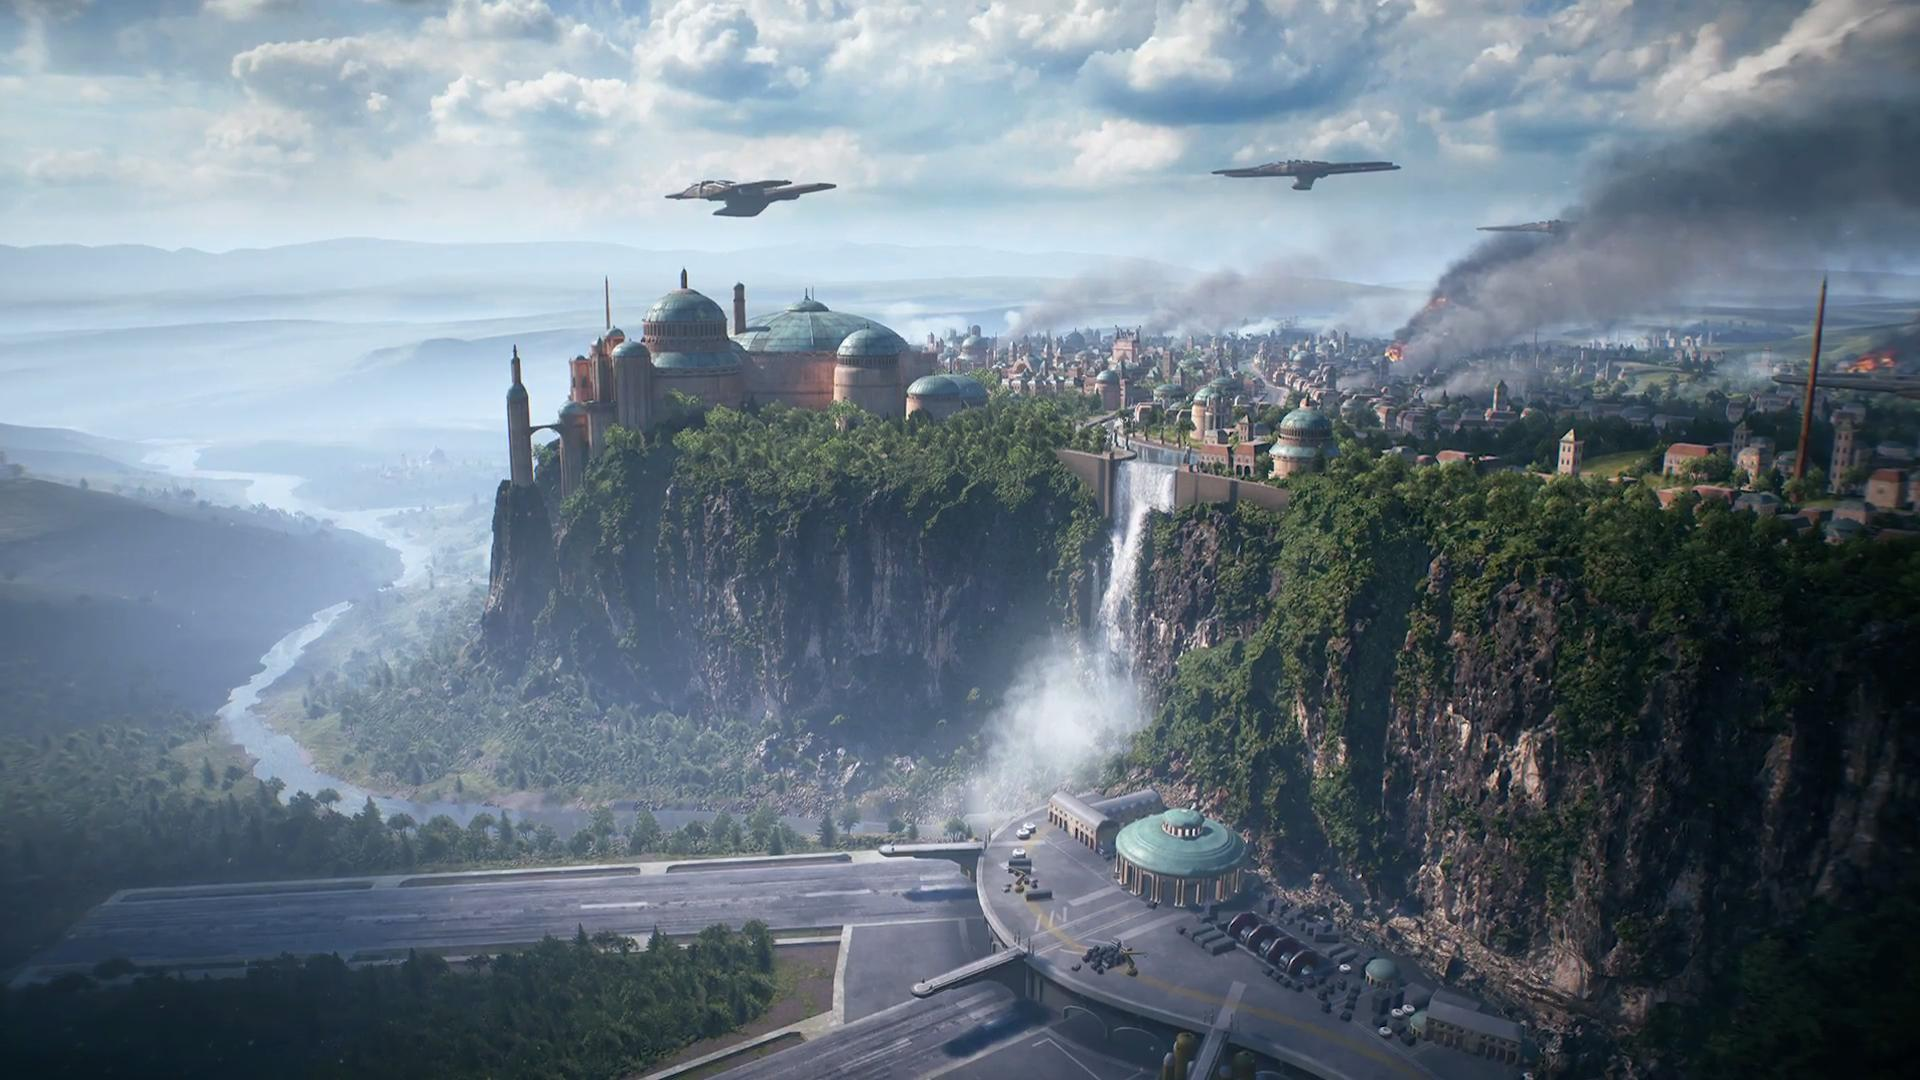 naboo_theed_star_wars_battlefront_2_capture_1